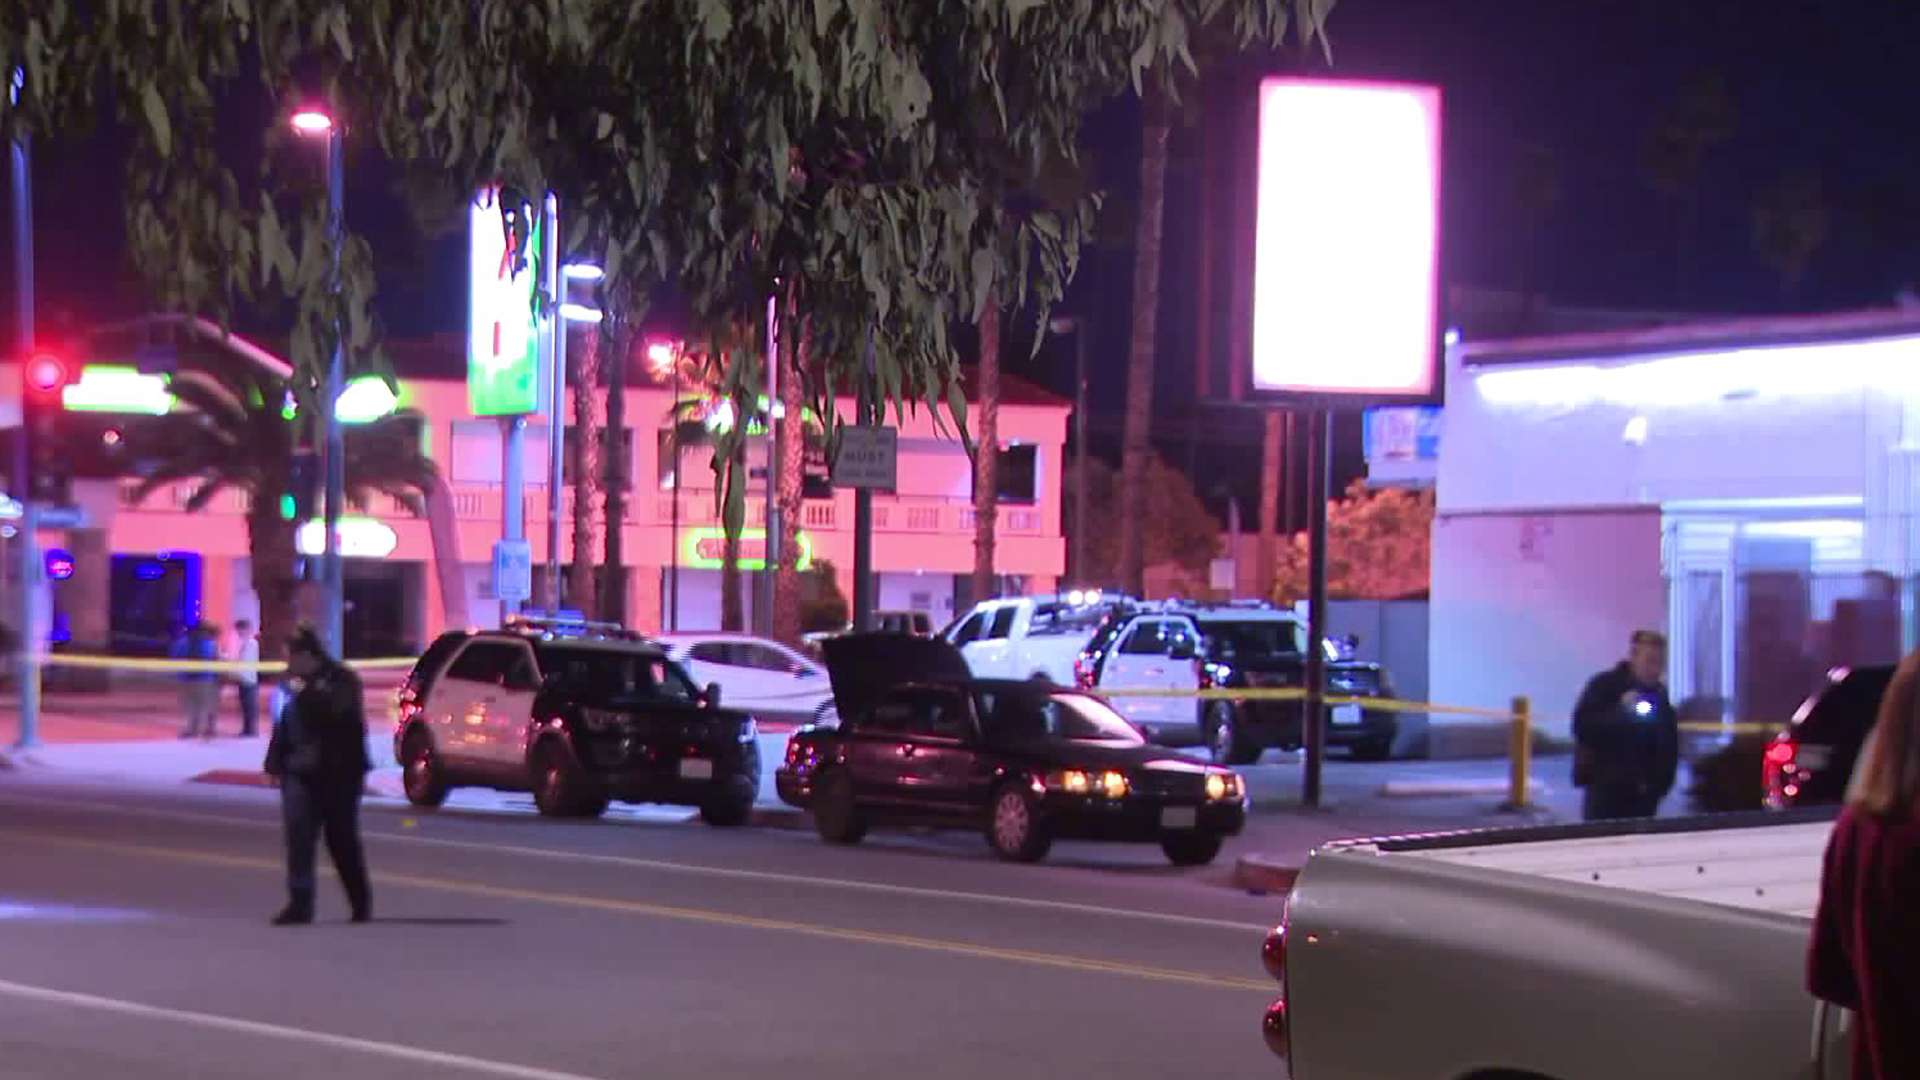 Police investigate the scene in North Hollywood where a man and woman crashed a vehicle after being shot on Dec.7, 2018. (Credit: KTLA)